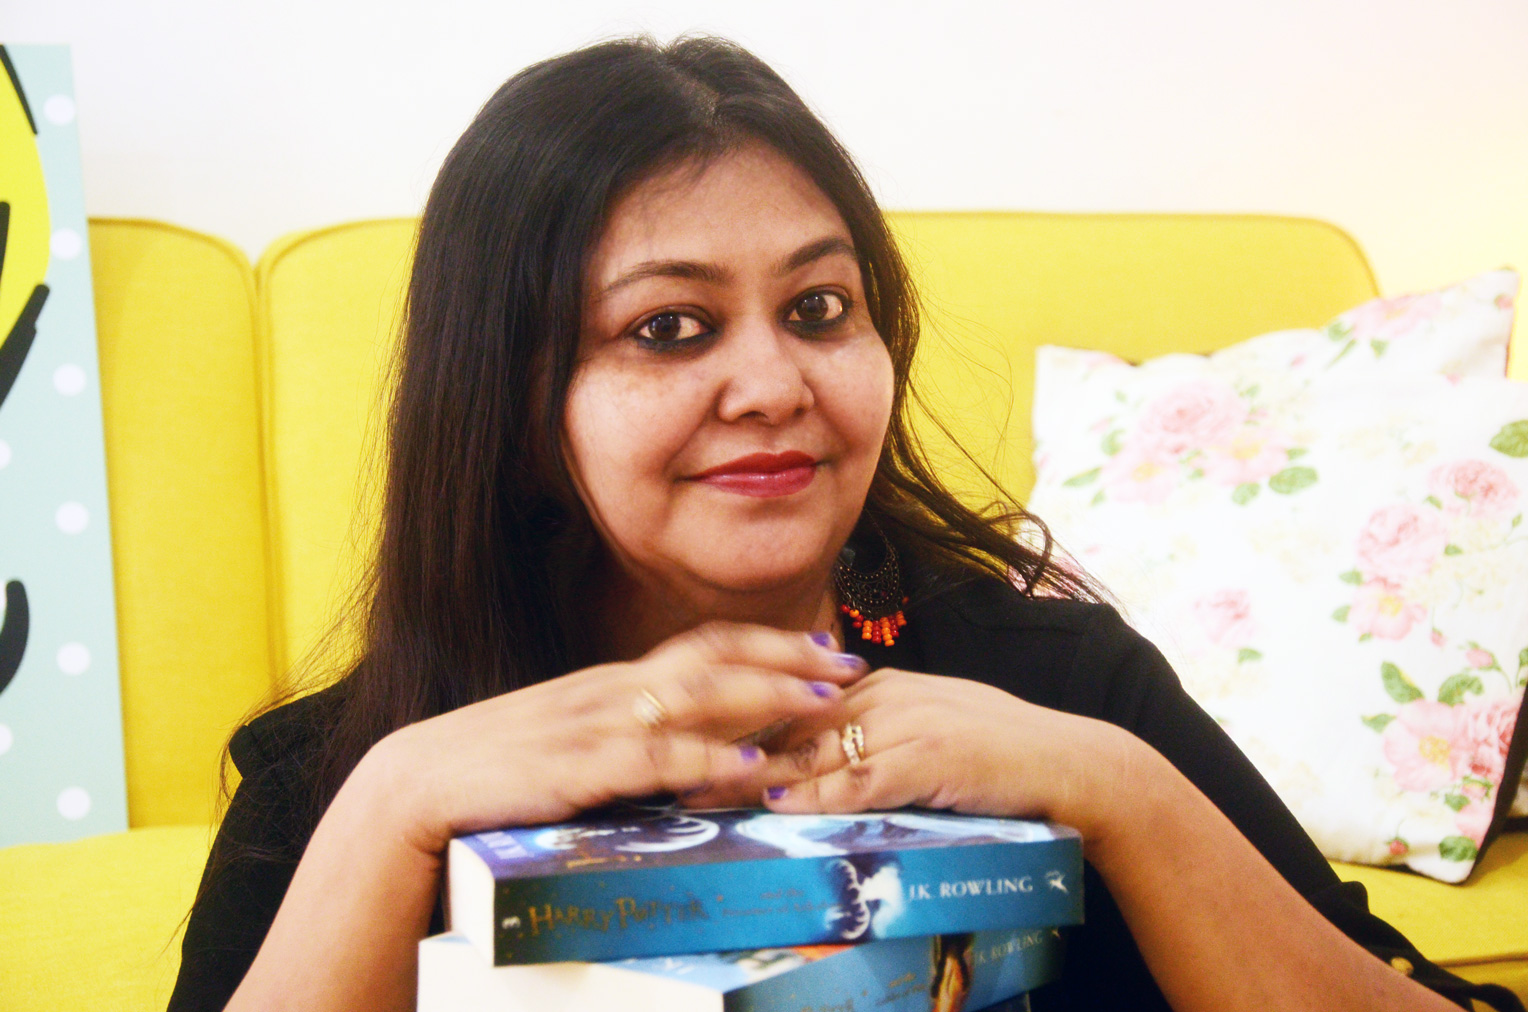 Why Is Erotica Considered Sinful, Asks Author Shradha Singh